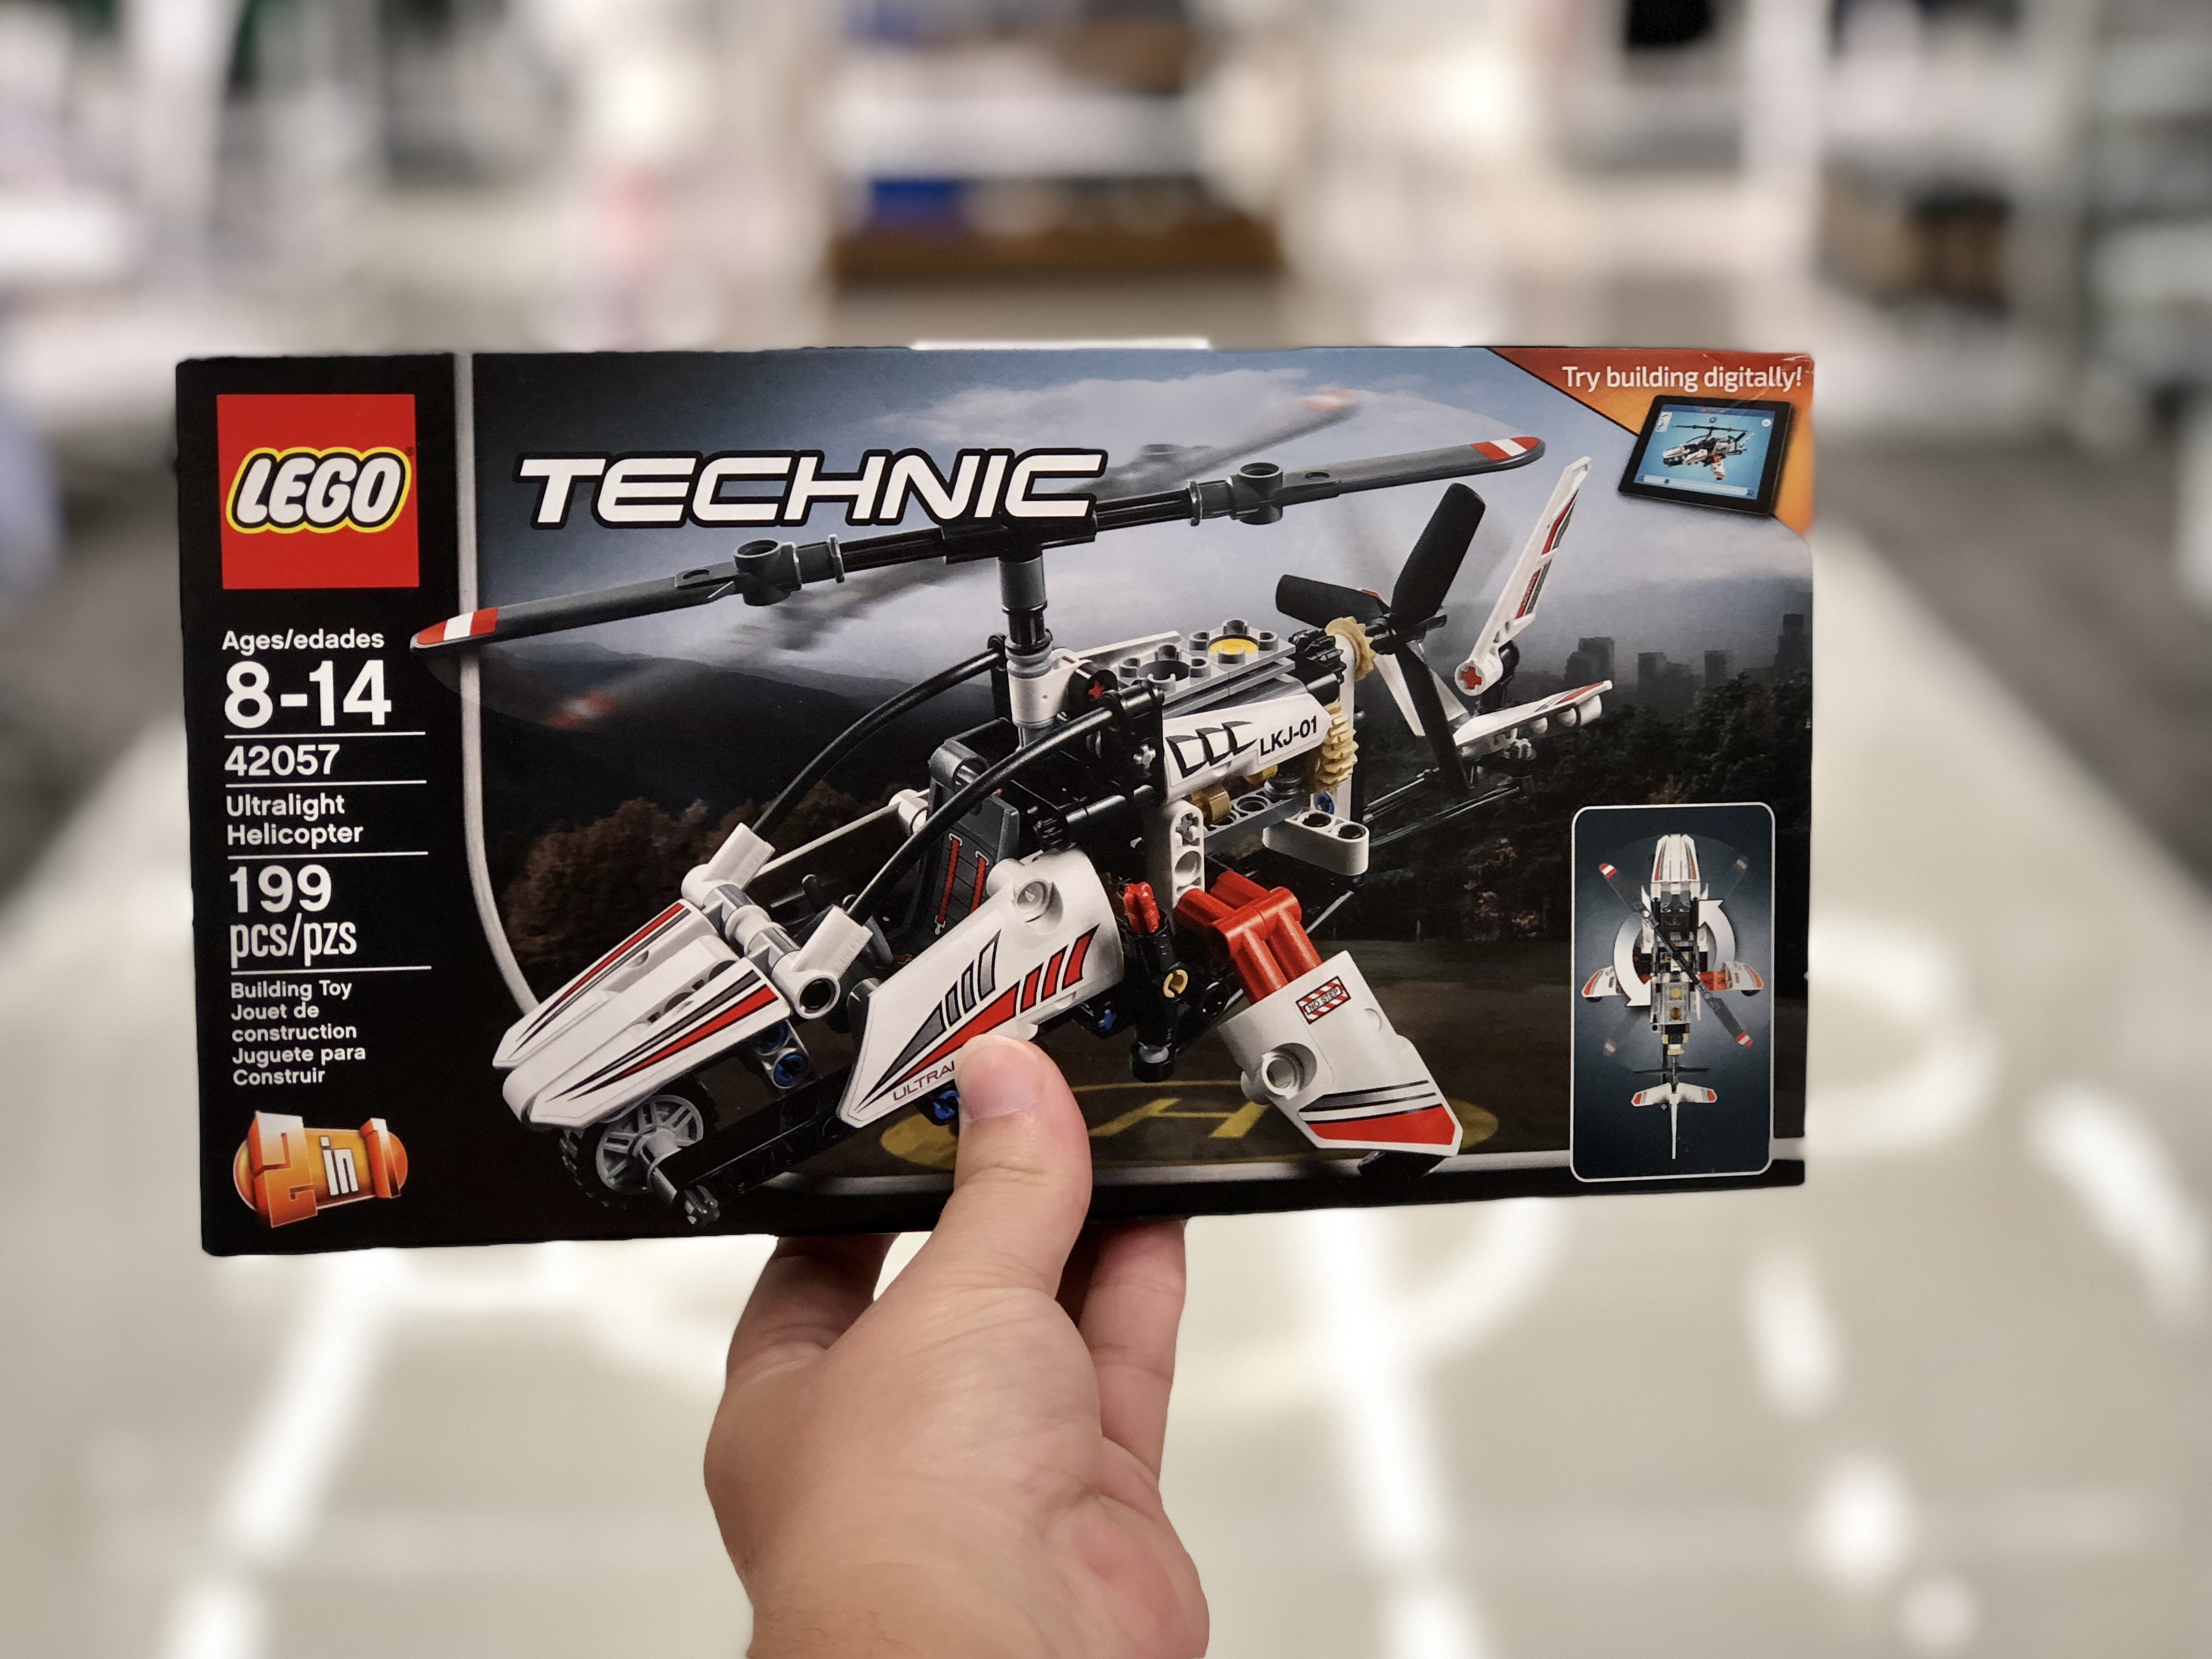 Set Lego Just13 99 Technic Helicopter Ultralight vYbgf67y